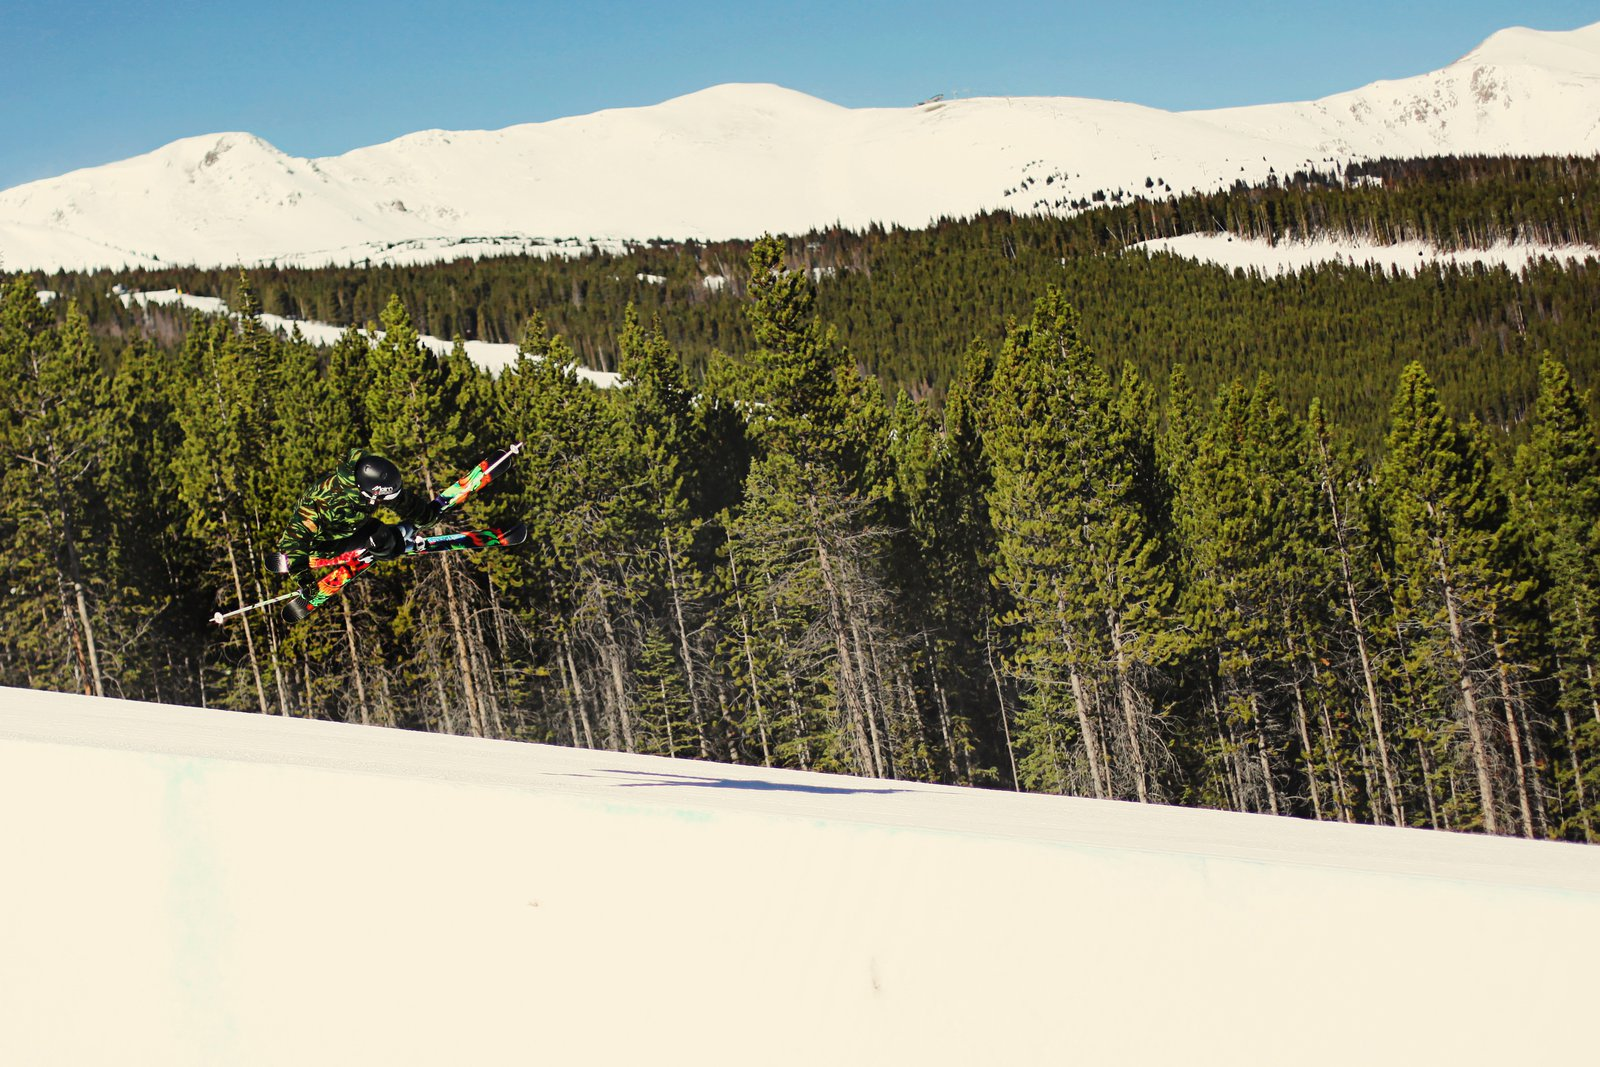 riding some pipe!